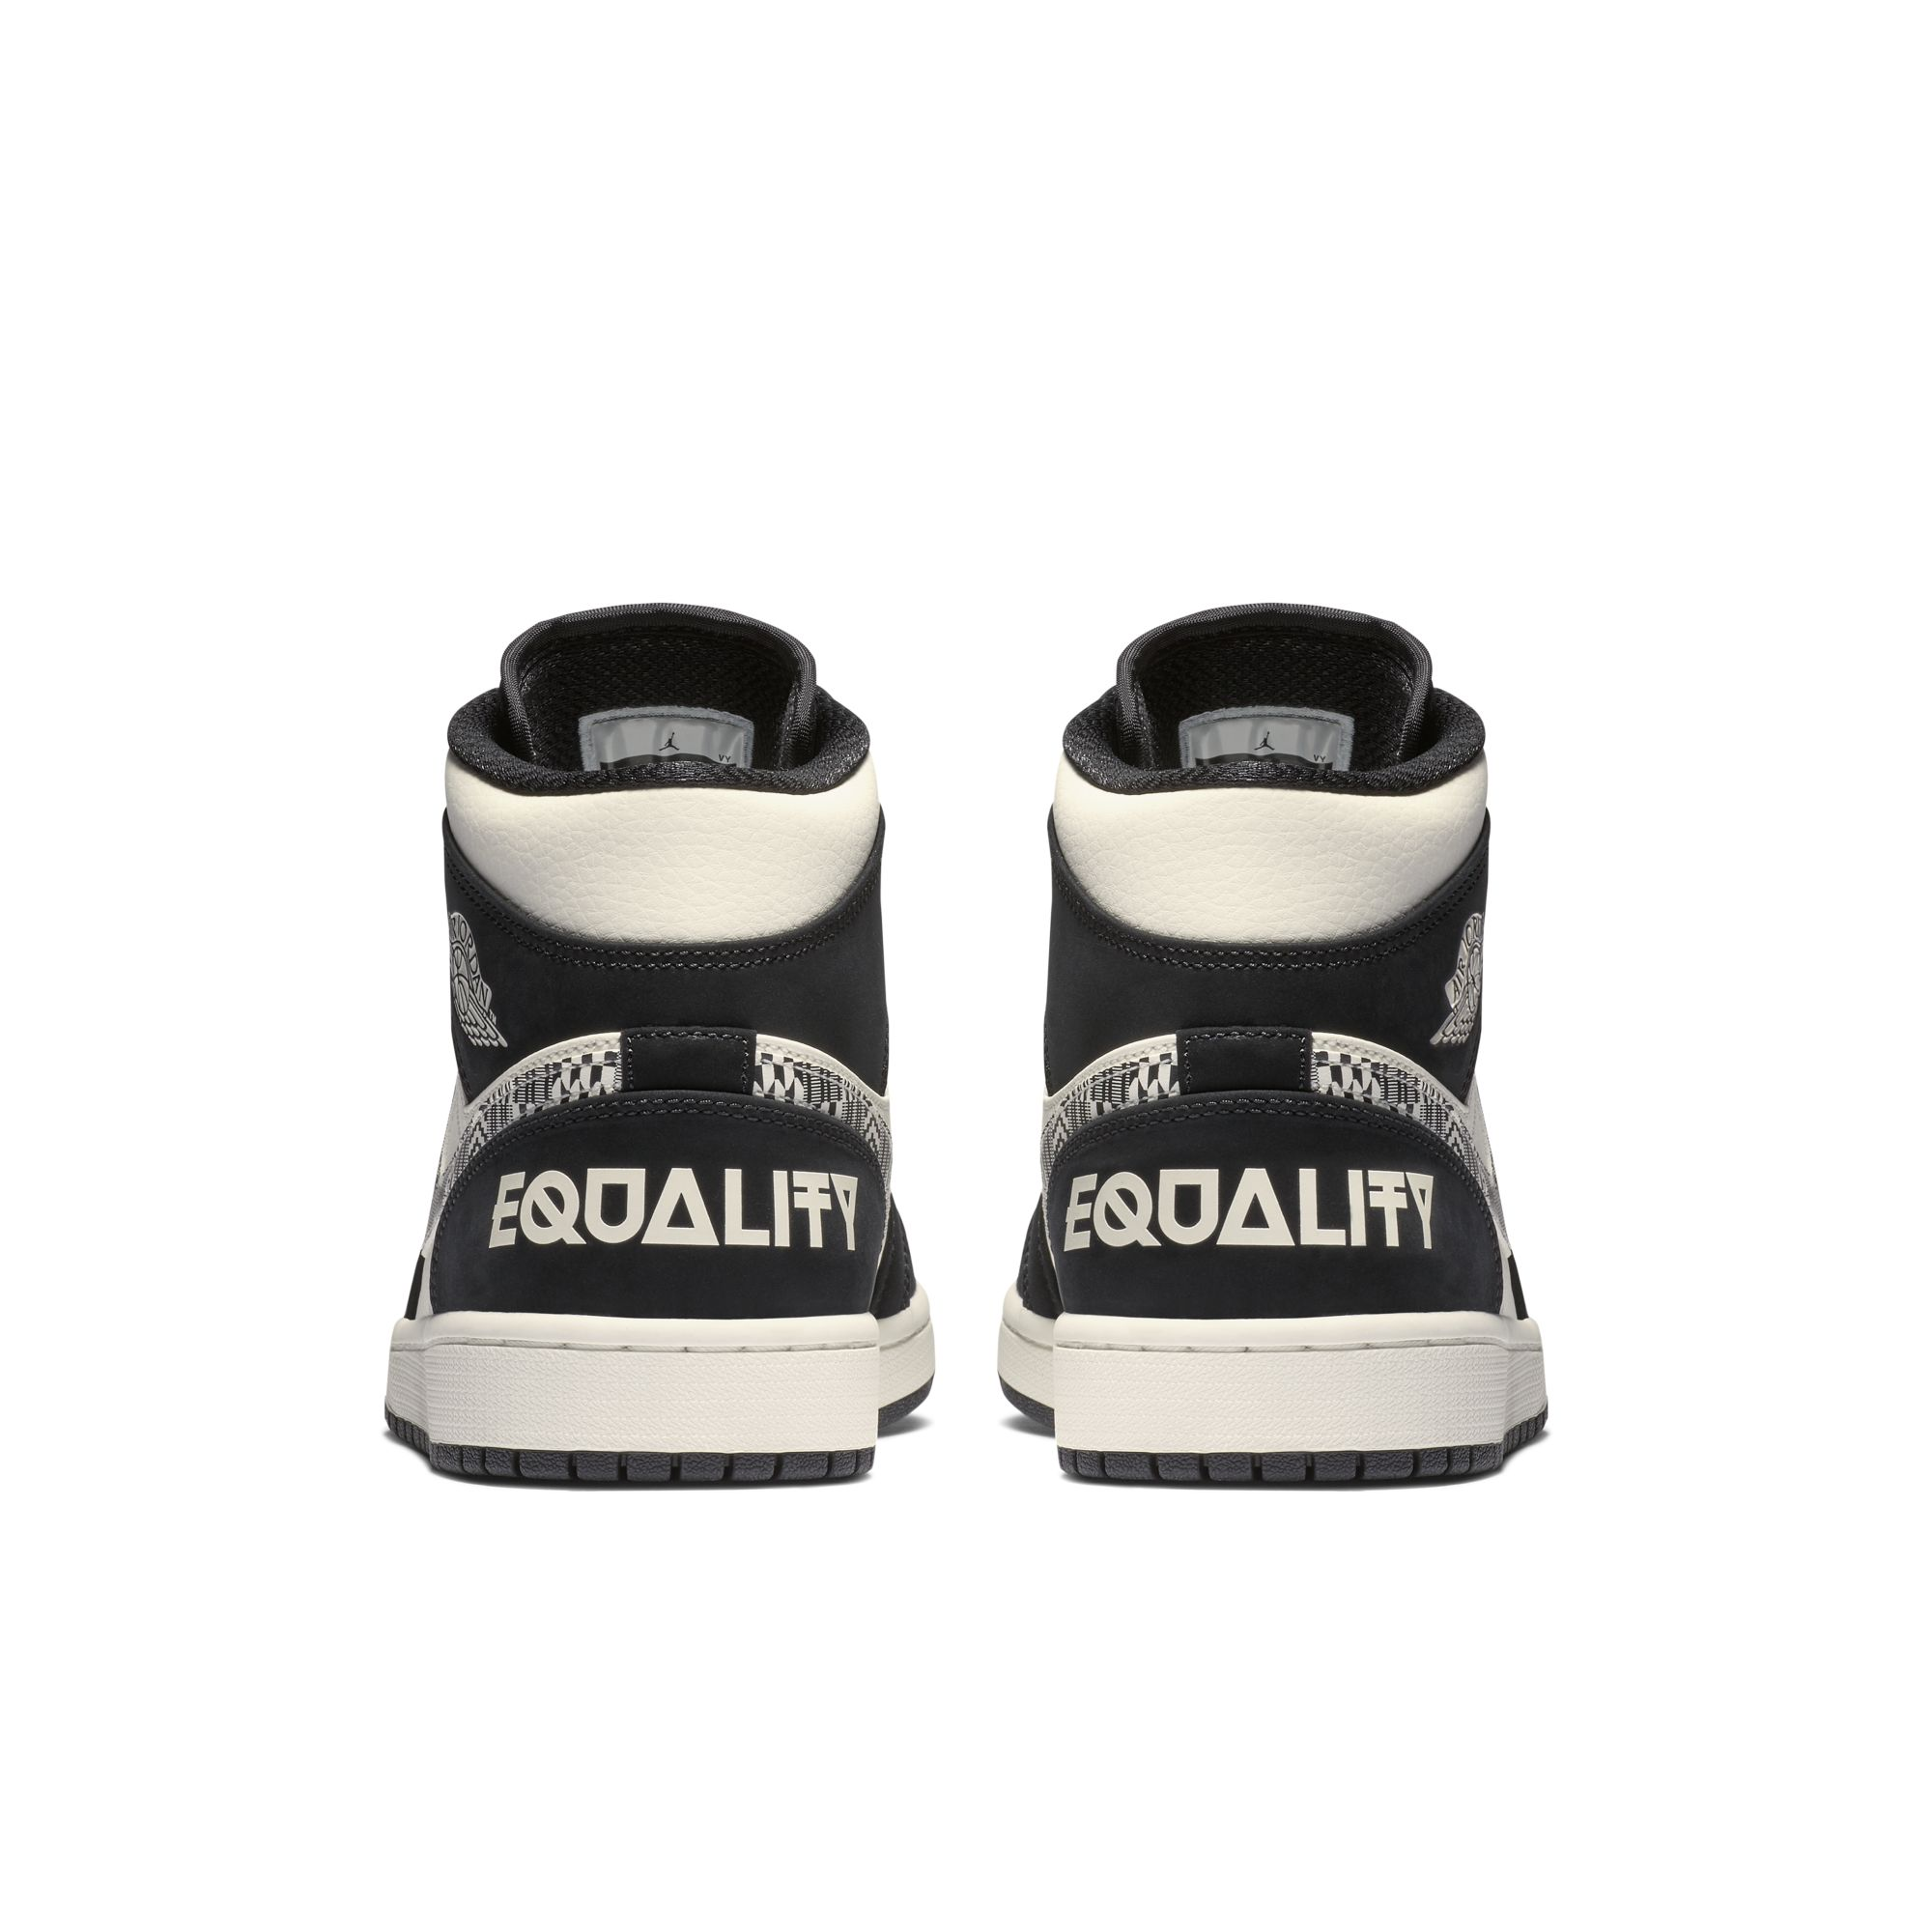 AIR JORDAN 1 MD EQUALITY WHITE:BLACK 5